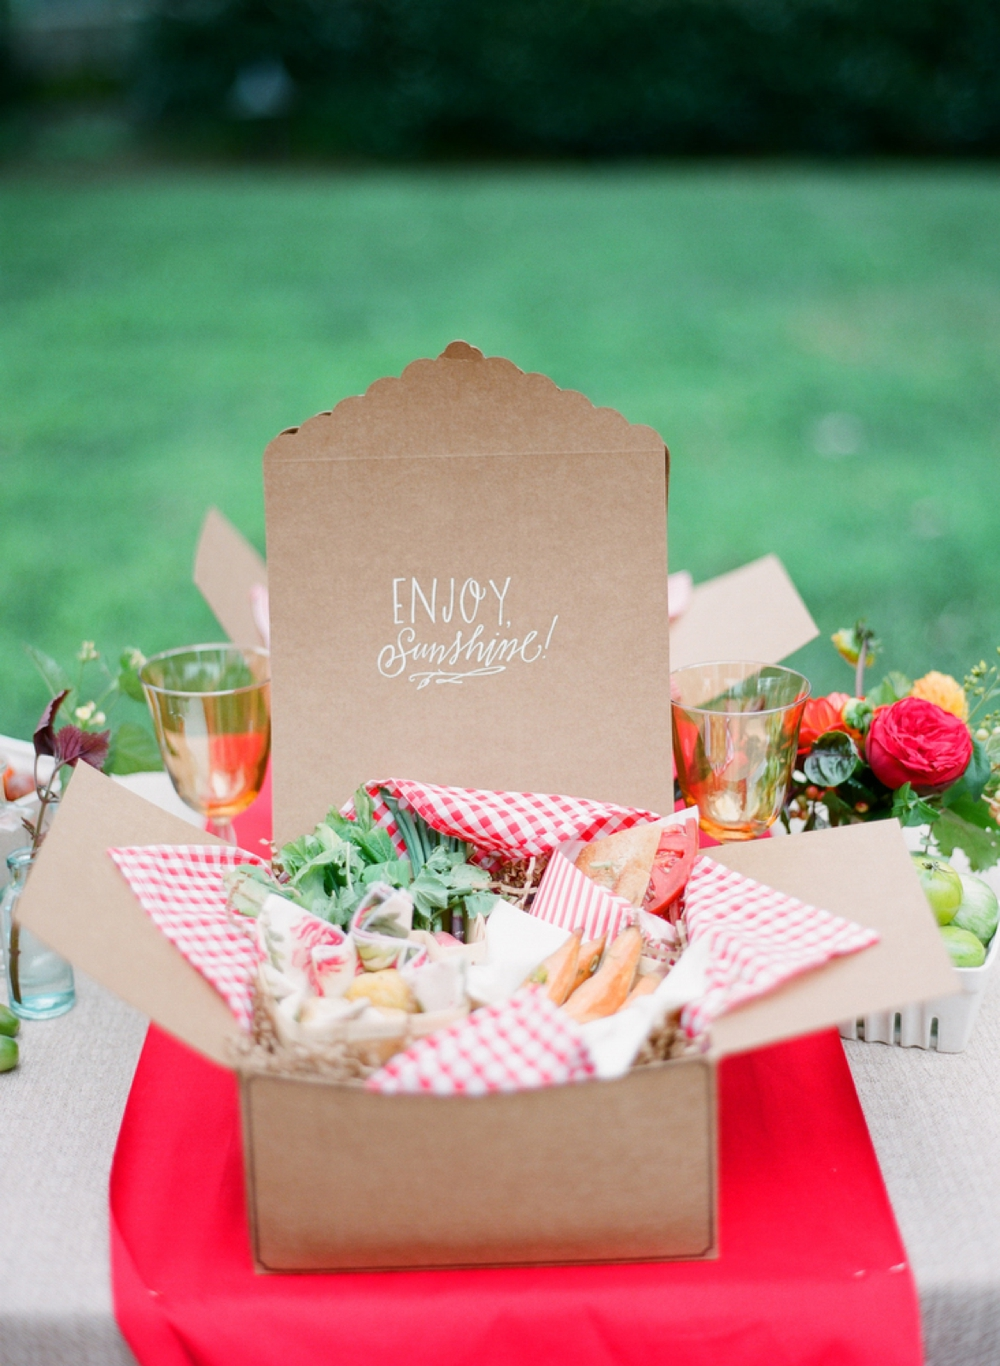 Summer Wedding Lunch Ideas : Spectacular bridal shower themes ultimate bridesmaid